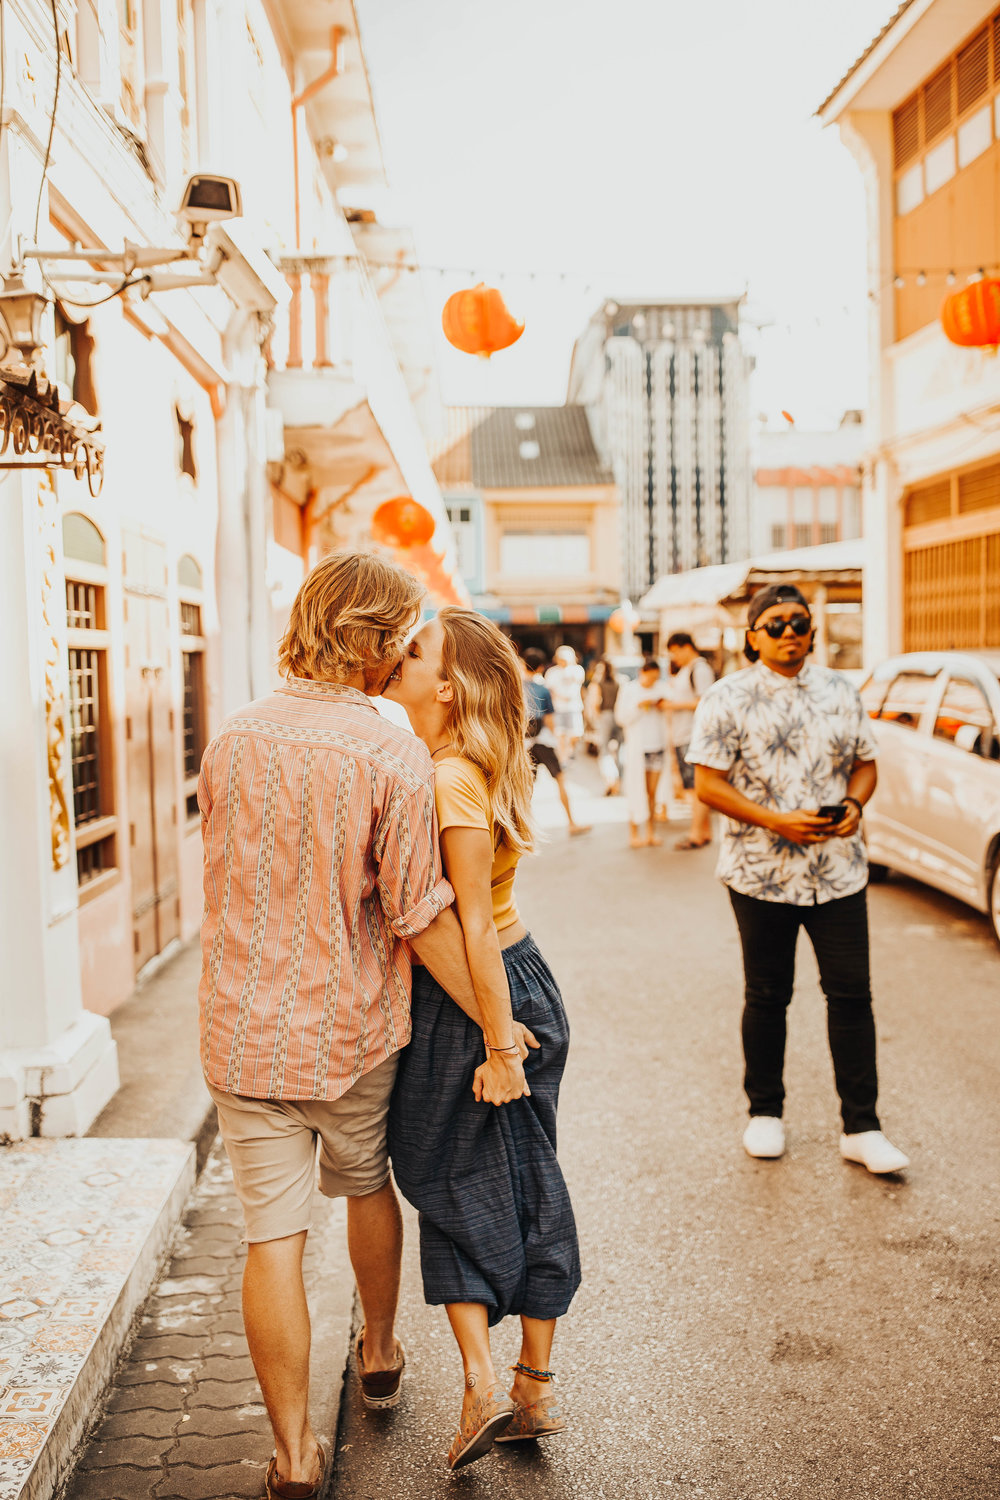 Julie and Will Old Town Phuket Couples Session 49.jpg